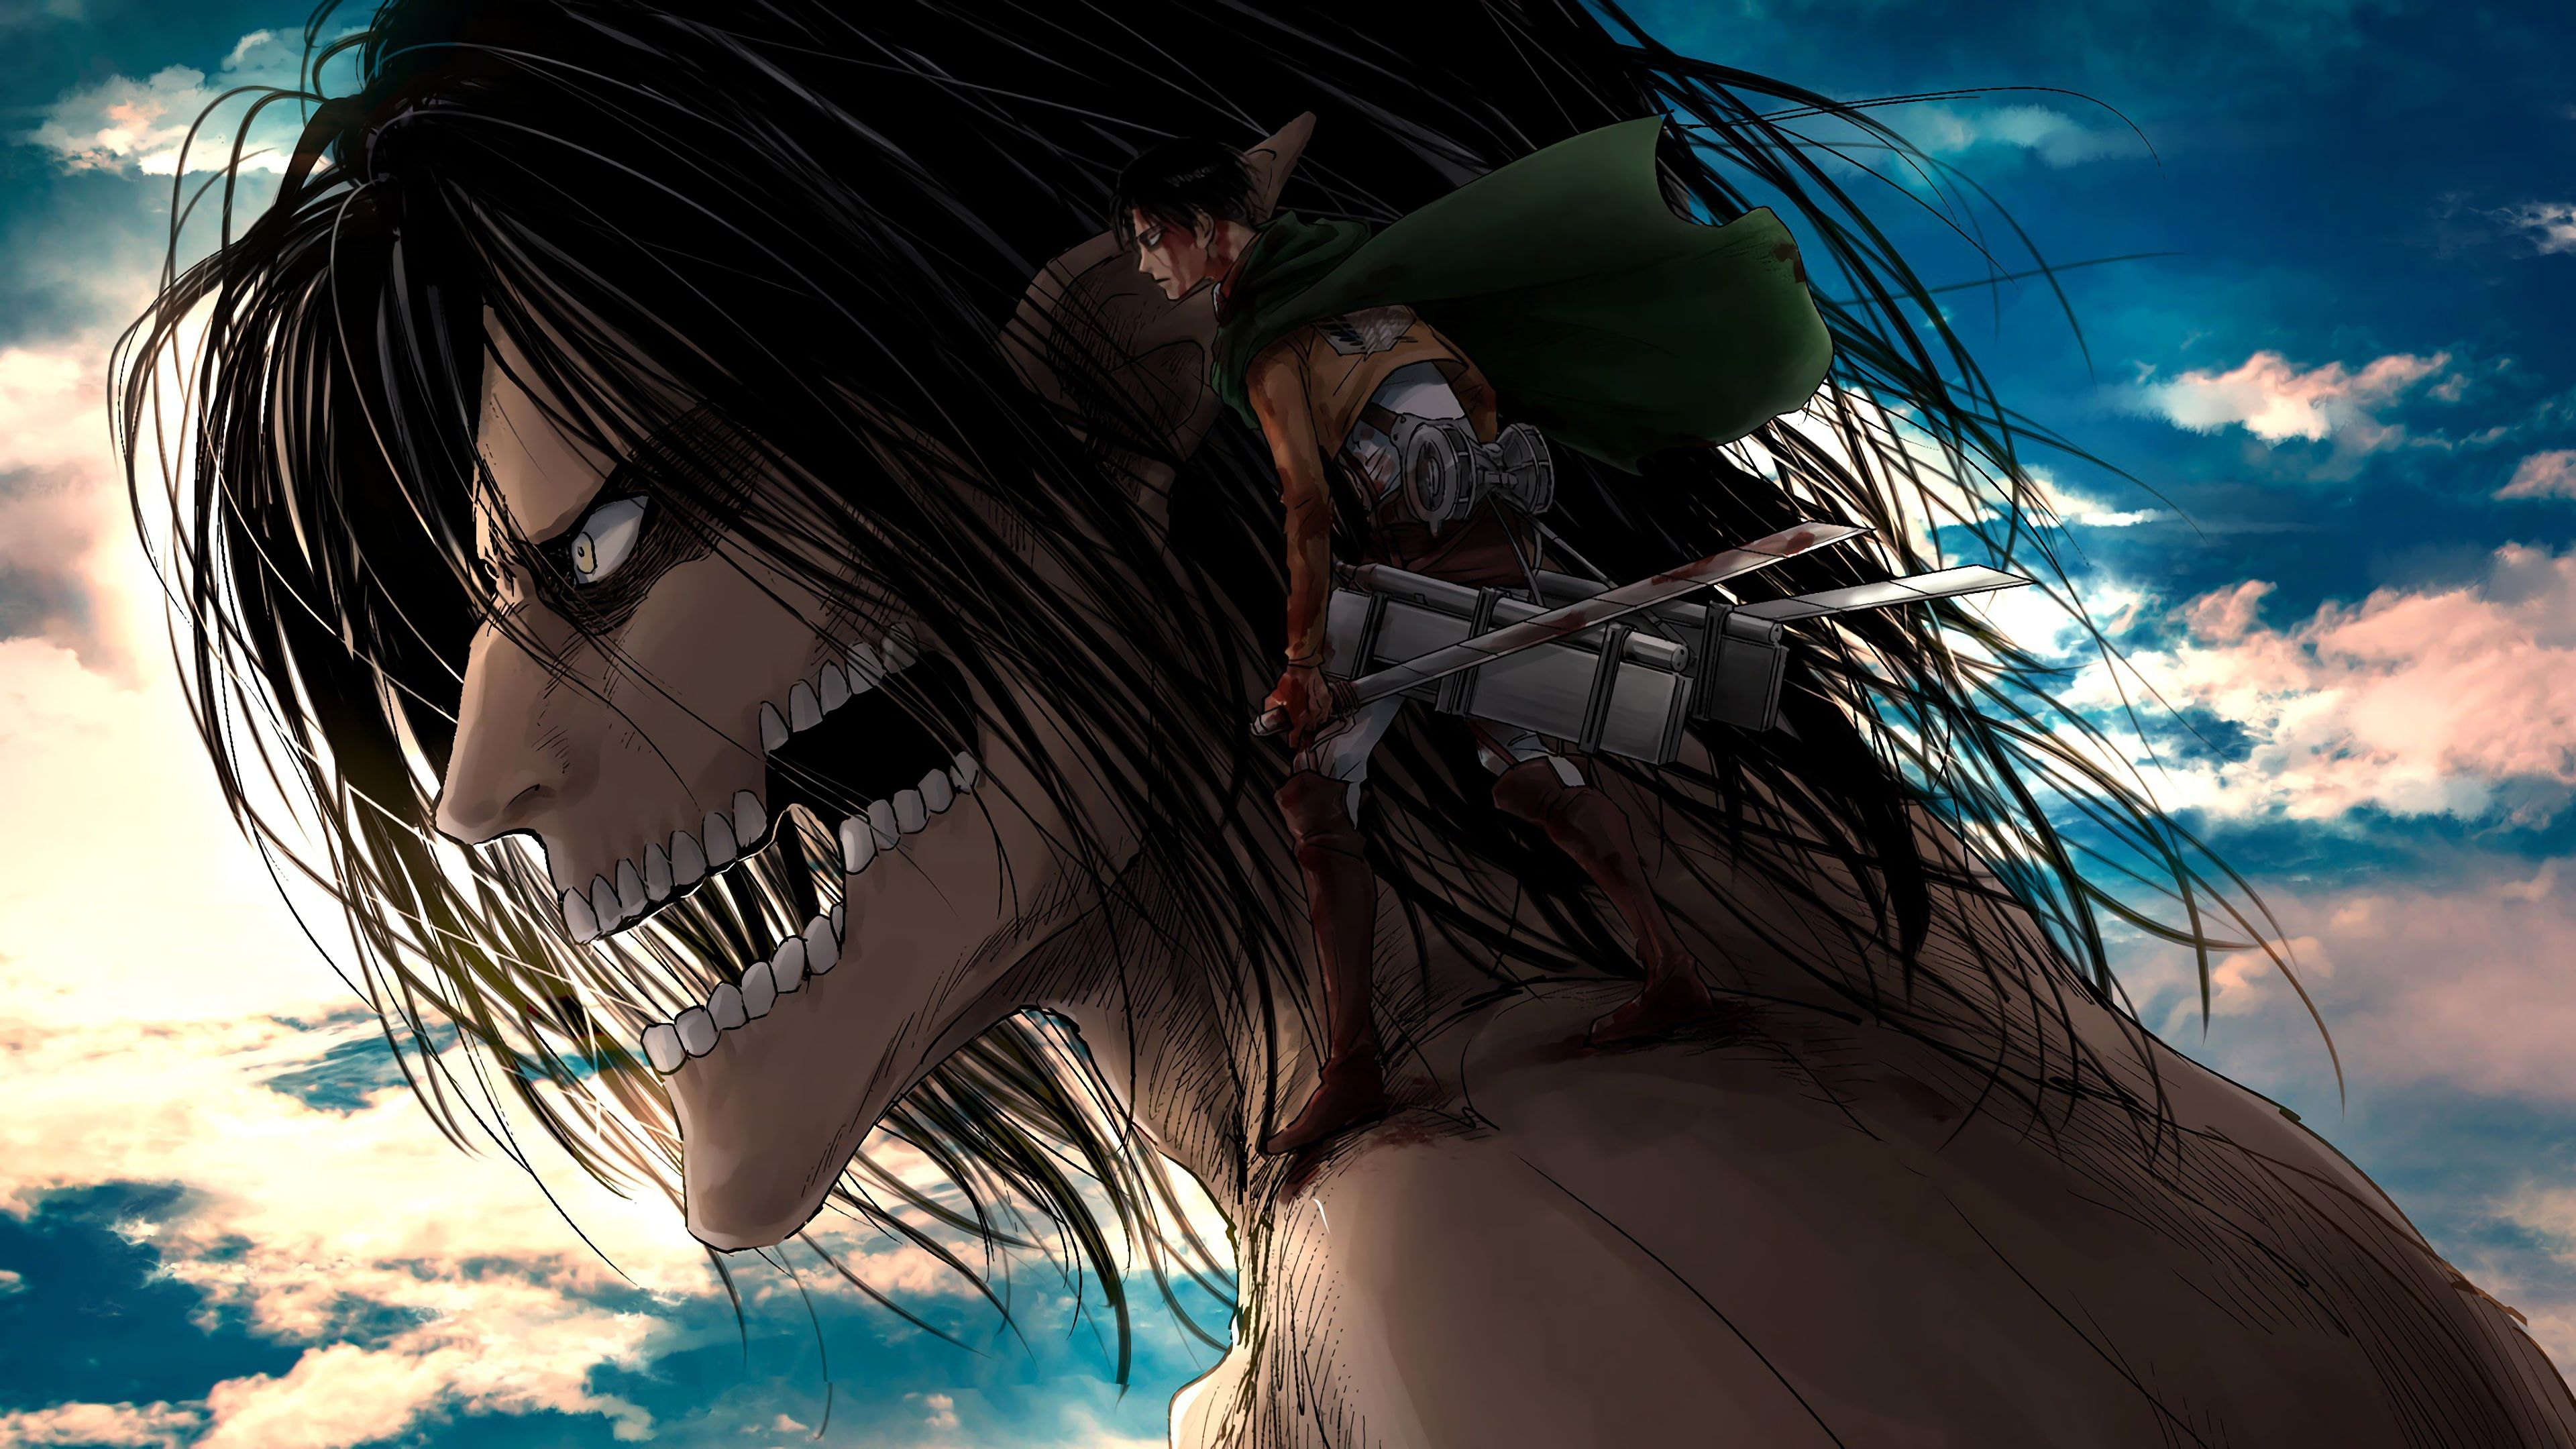 On april 15, 1912, the titanic entered history as one of the most notorious disasters at sea when the unsinkable ship struck an iceberg. Attack On Titan Anime 4k PC Wallpapers - Wallpaper Cave